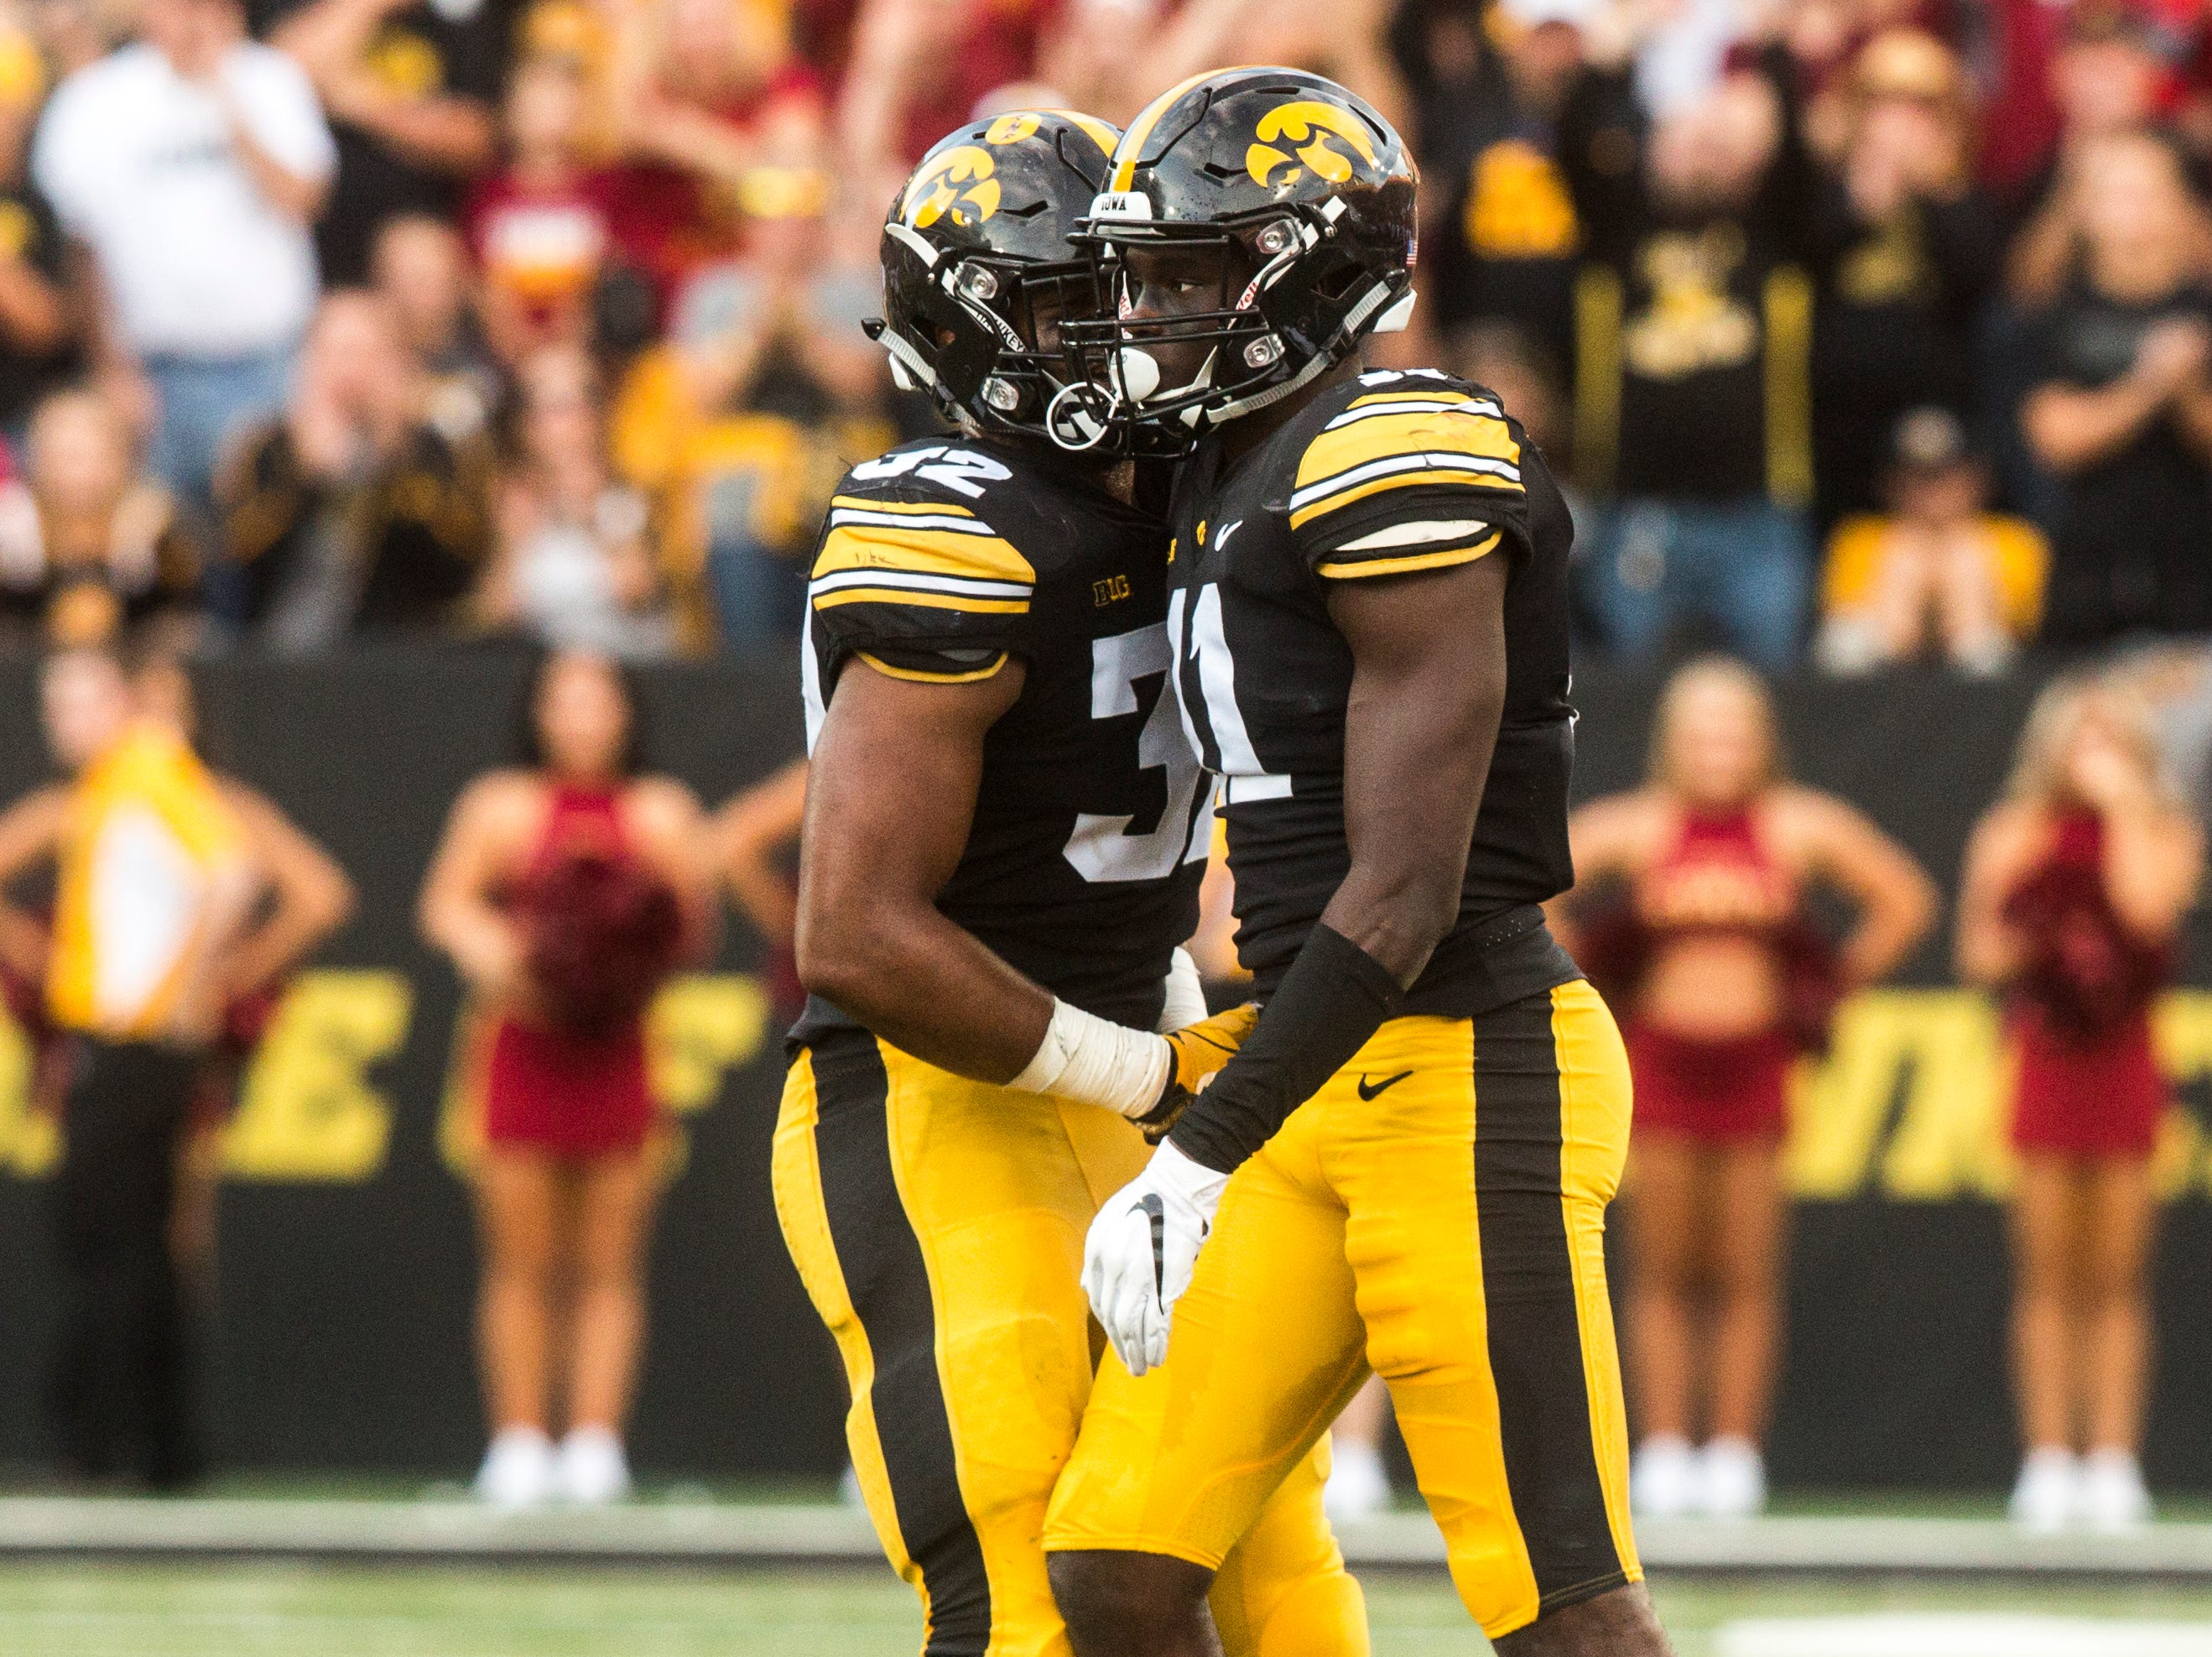 Iowa defensive back Michael Ojemudia (11) celebrates a stop with teammate Djimon Colbert (32) during the Cy-Hawk NCAA football game on Saturday, Sept. 8, 2018, at Kinnick Stadium in Iowa City.